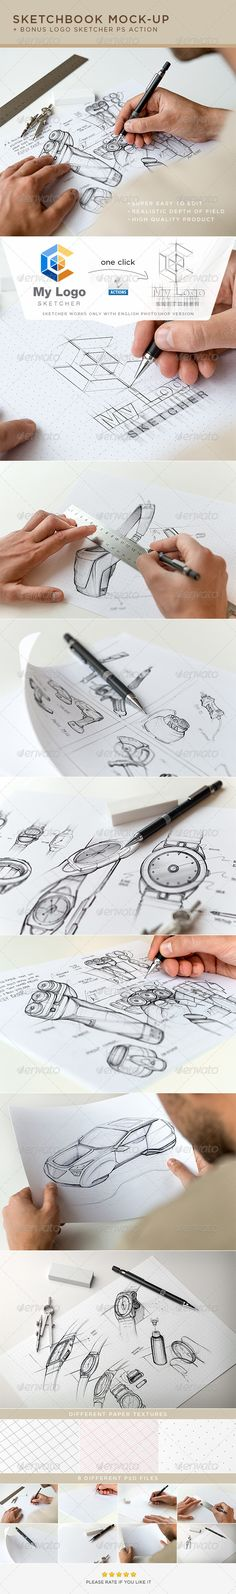 Sketchbook Mock-Up - Miscellaneous Print. Save time and make your brand look eye candy with this photorealistic sketchbook mock-ups. Easy to place your designs using smart objects, double-click the Smart Layer, copy & paste your artwork, save and you're done!